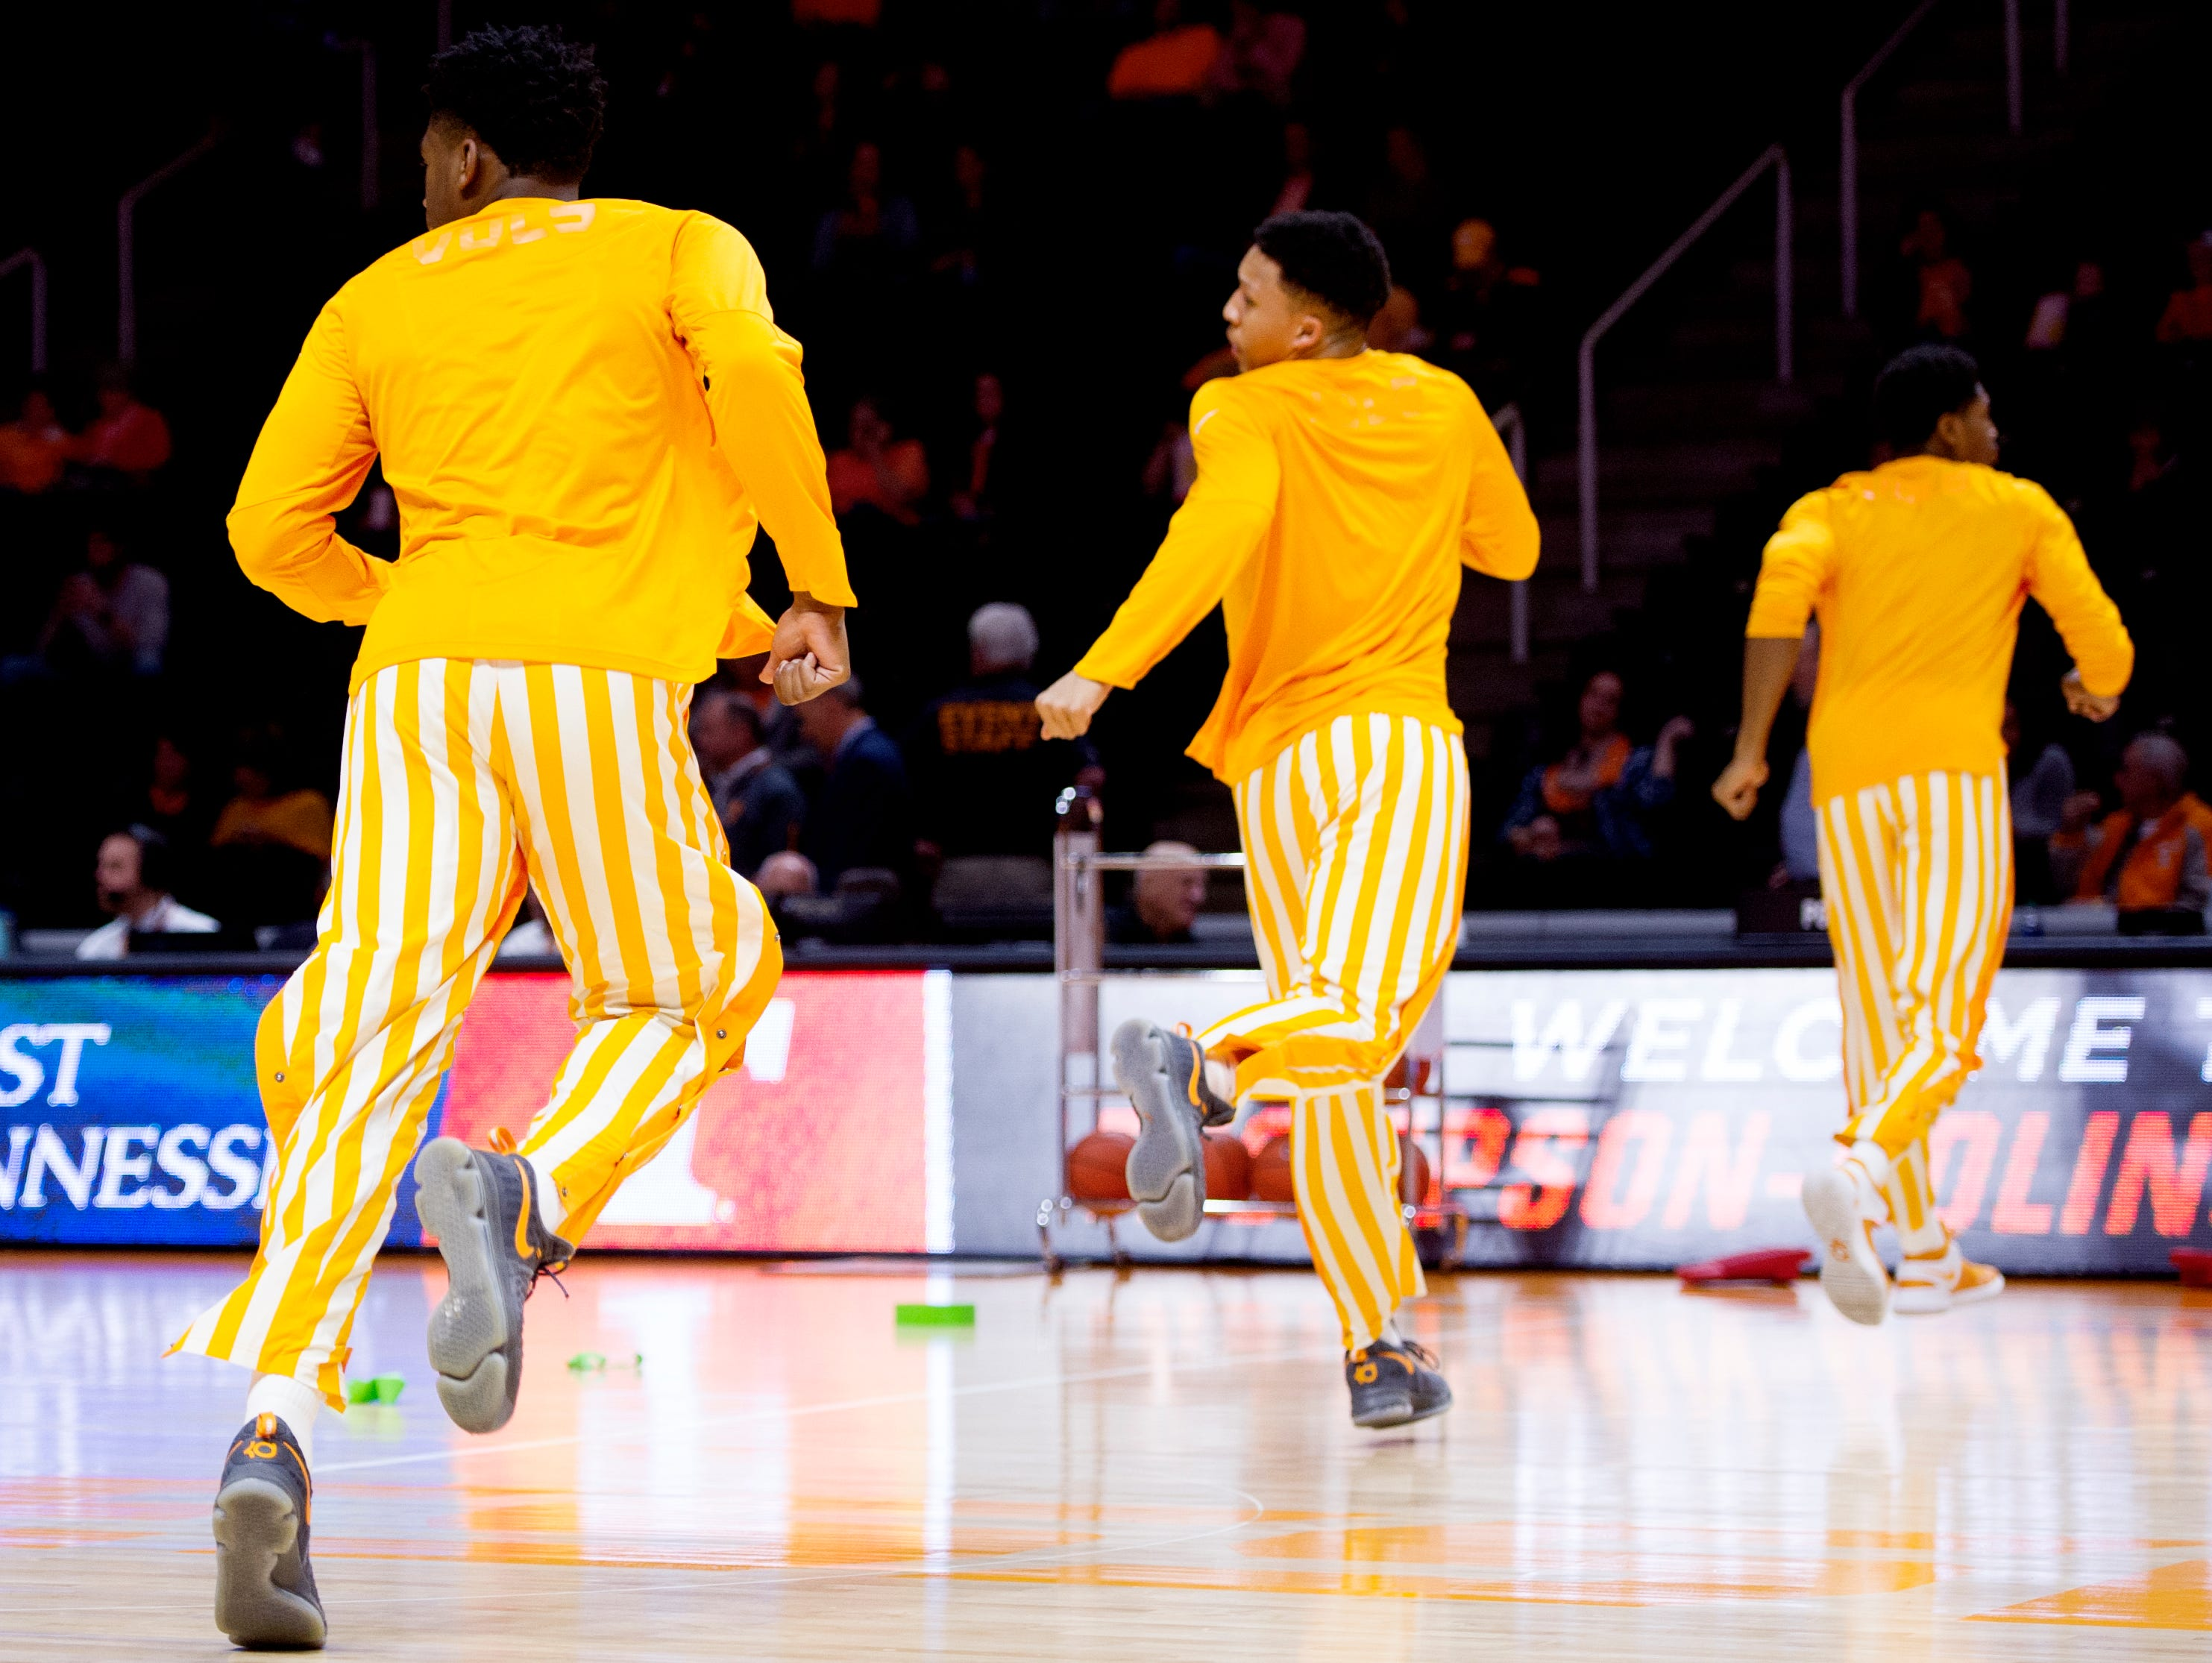 Tennessee men's basketball team stretches with style | USA ...